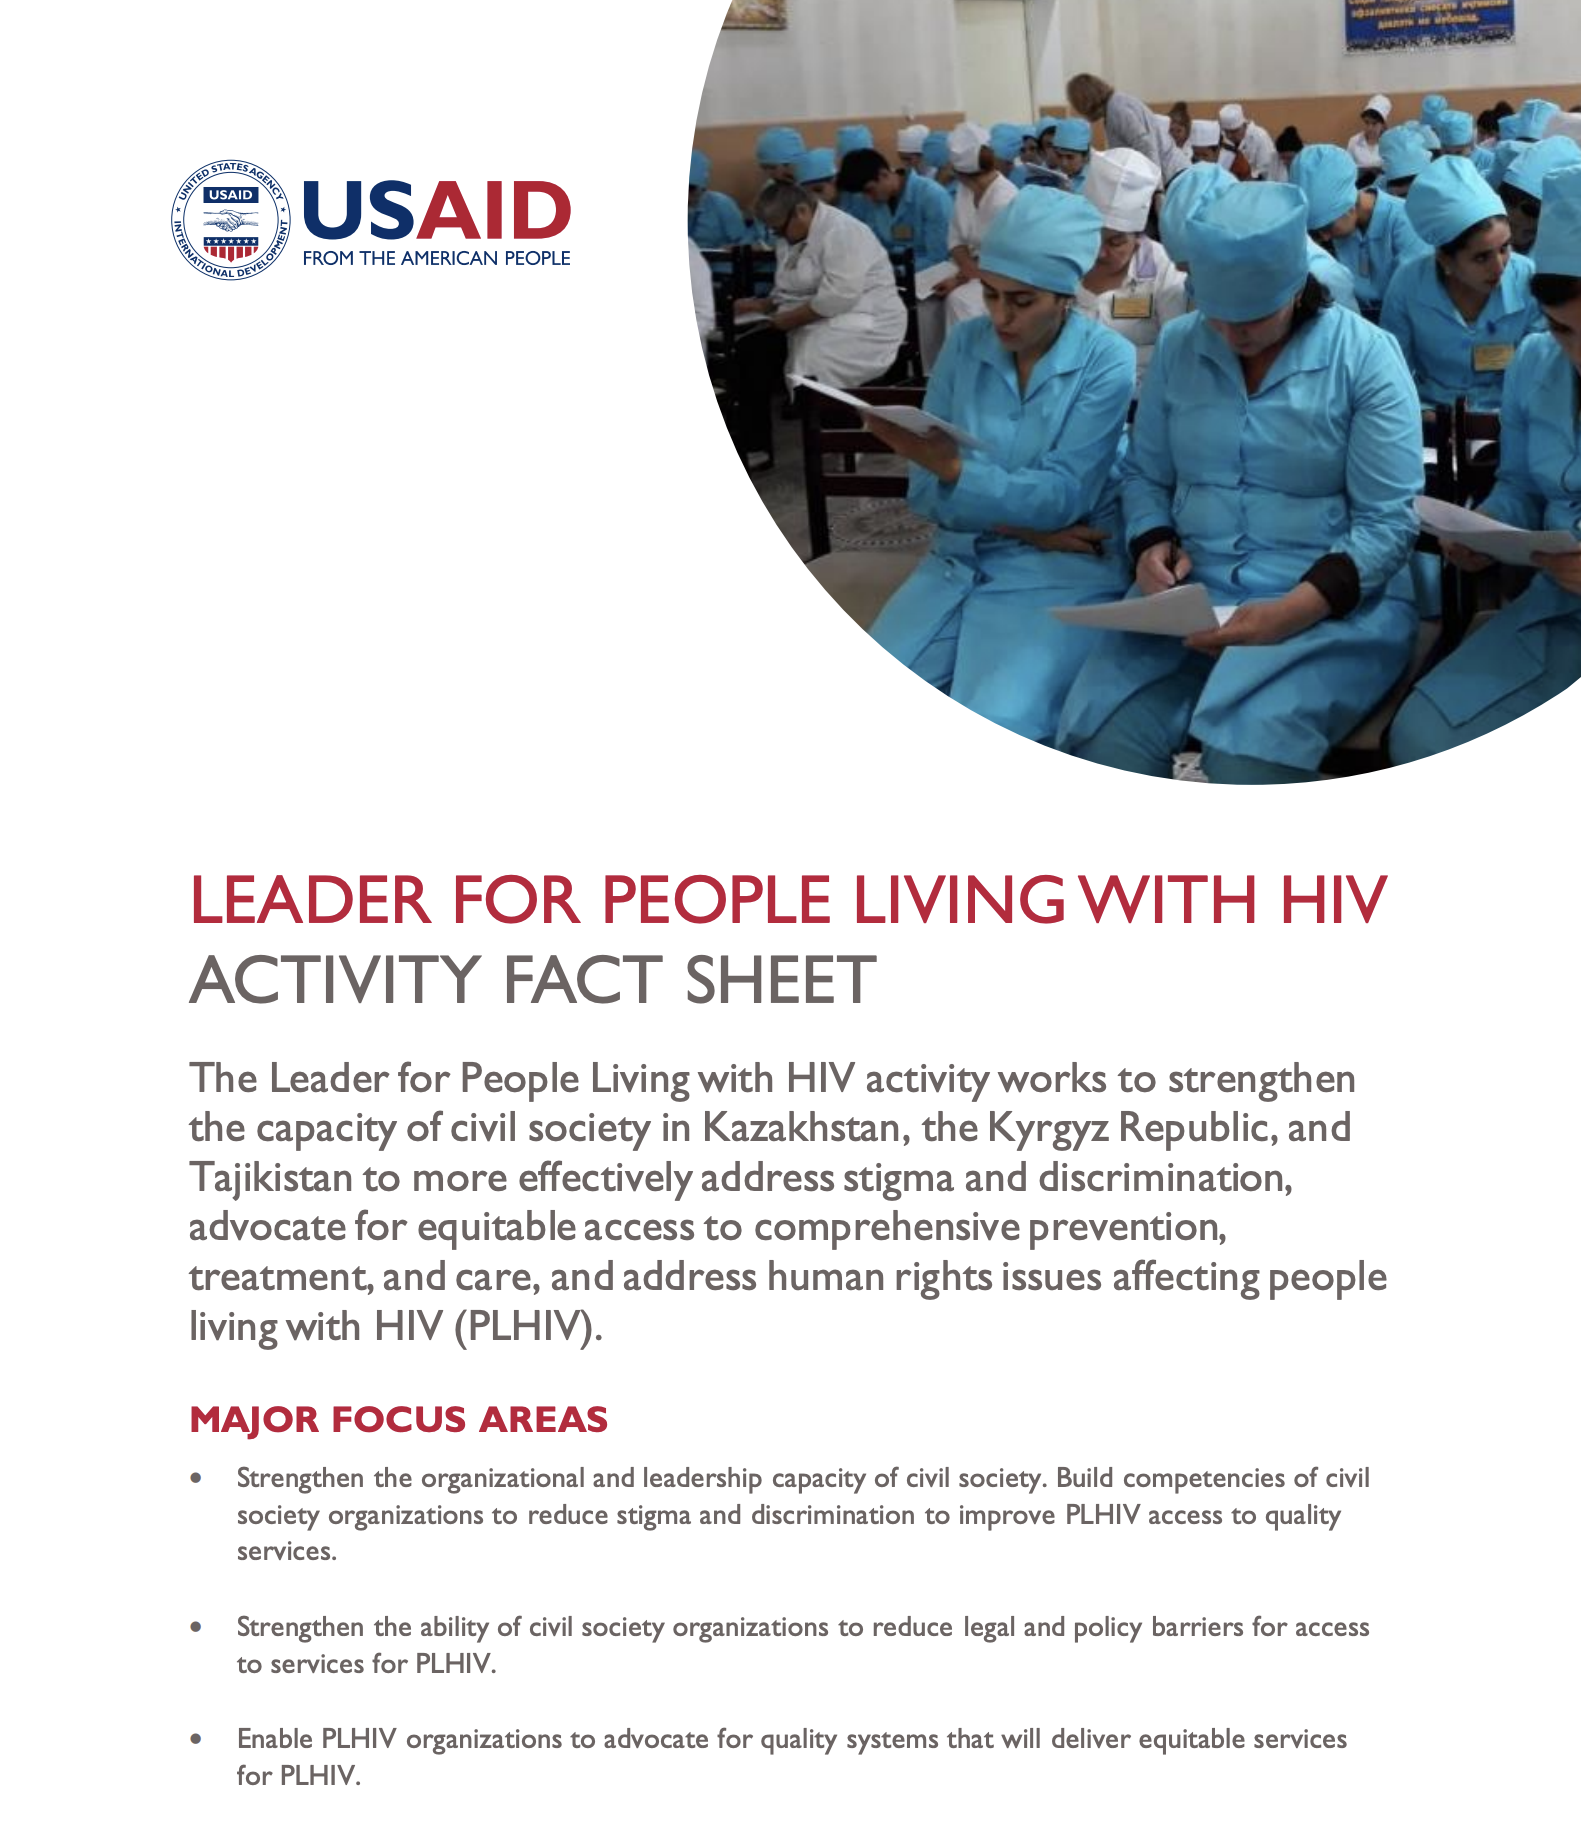 Leader for People Living with HIV